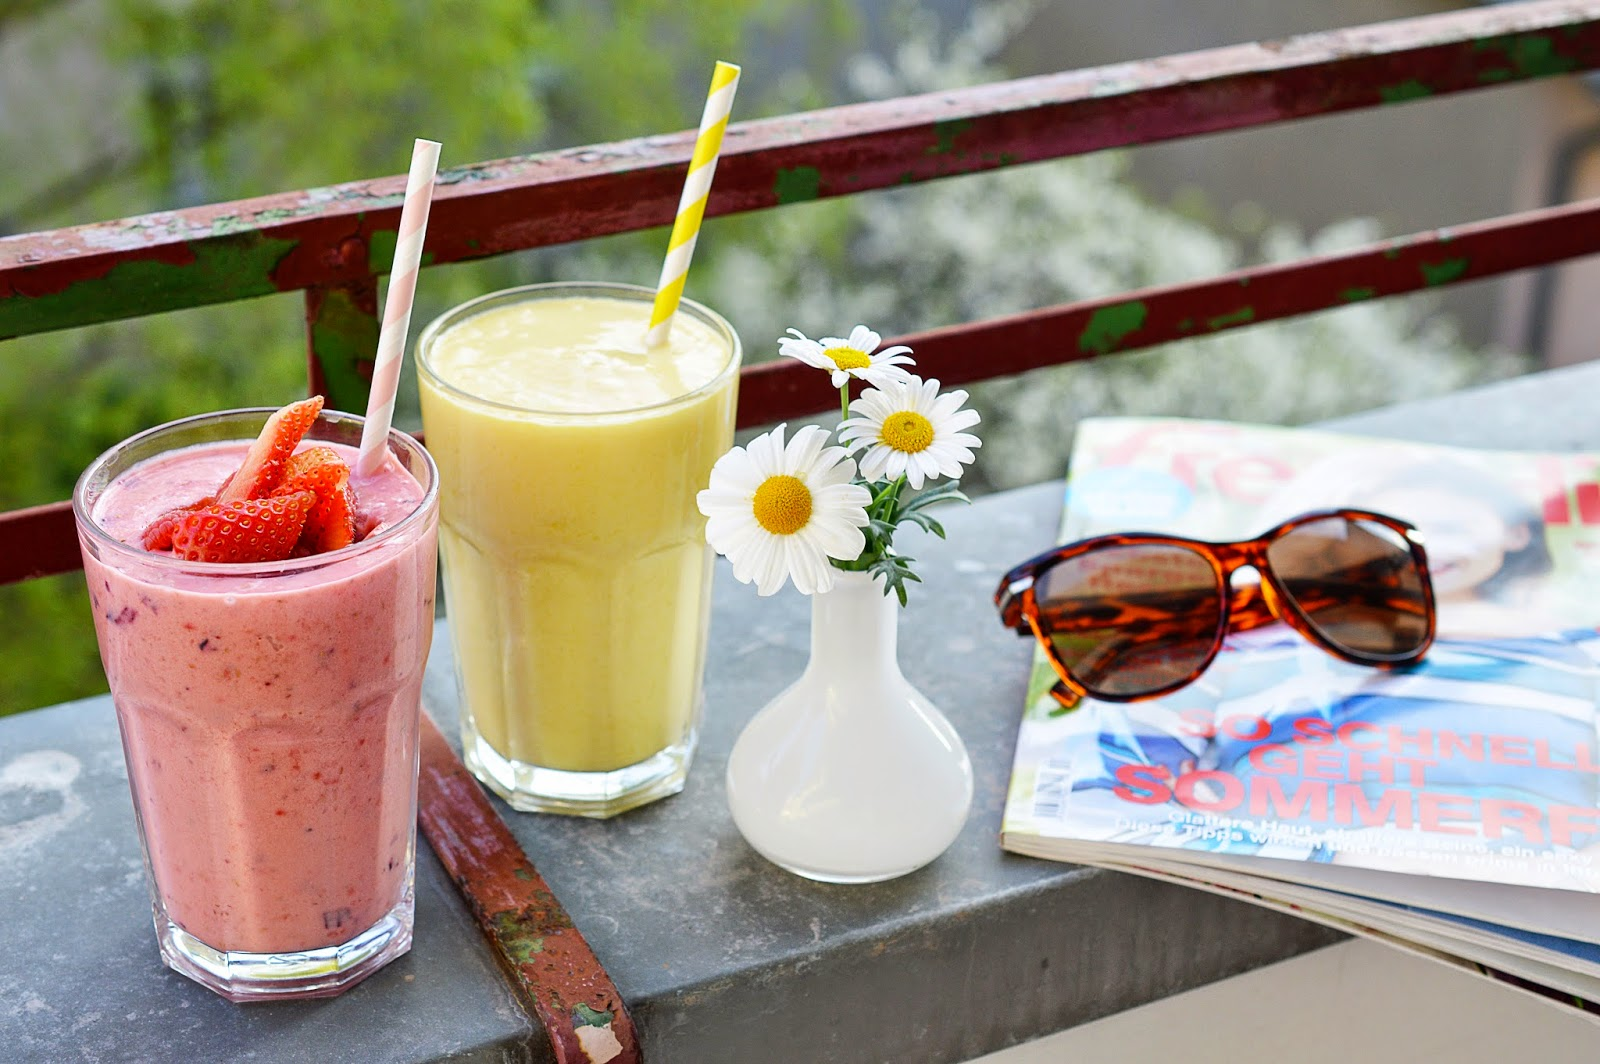 Summer Smoothie Recipe | Motte's Blog